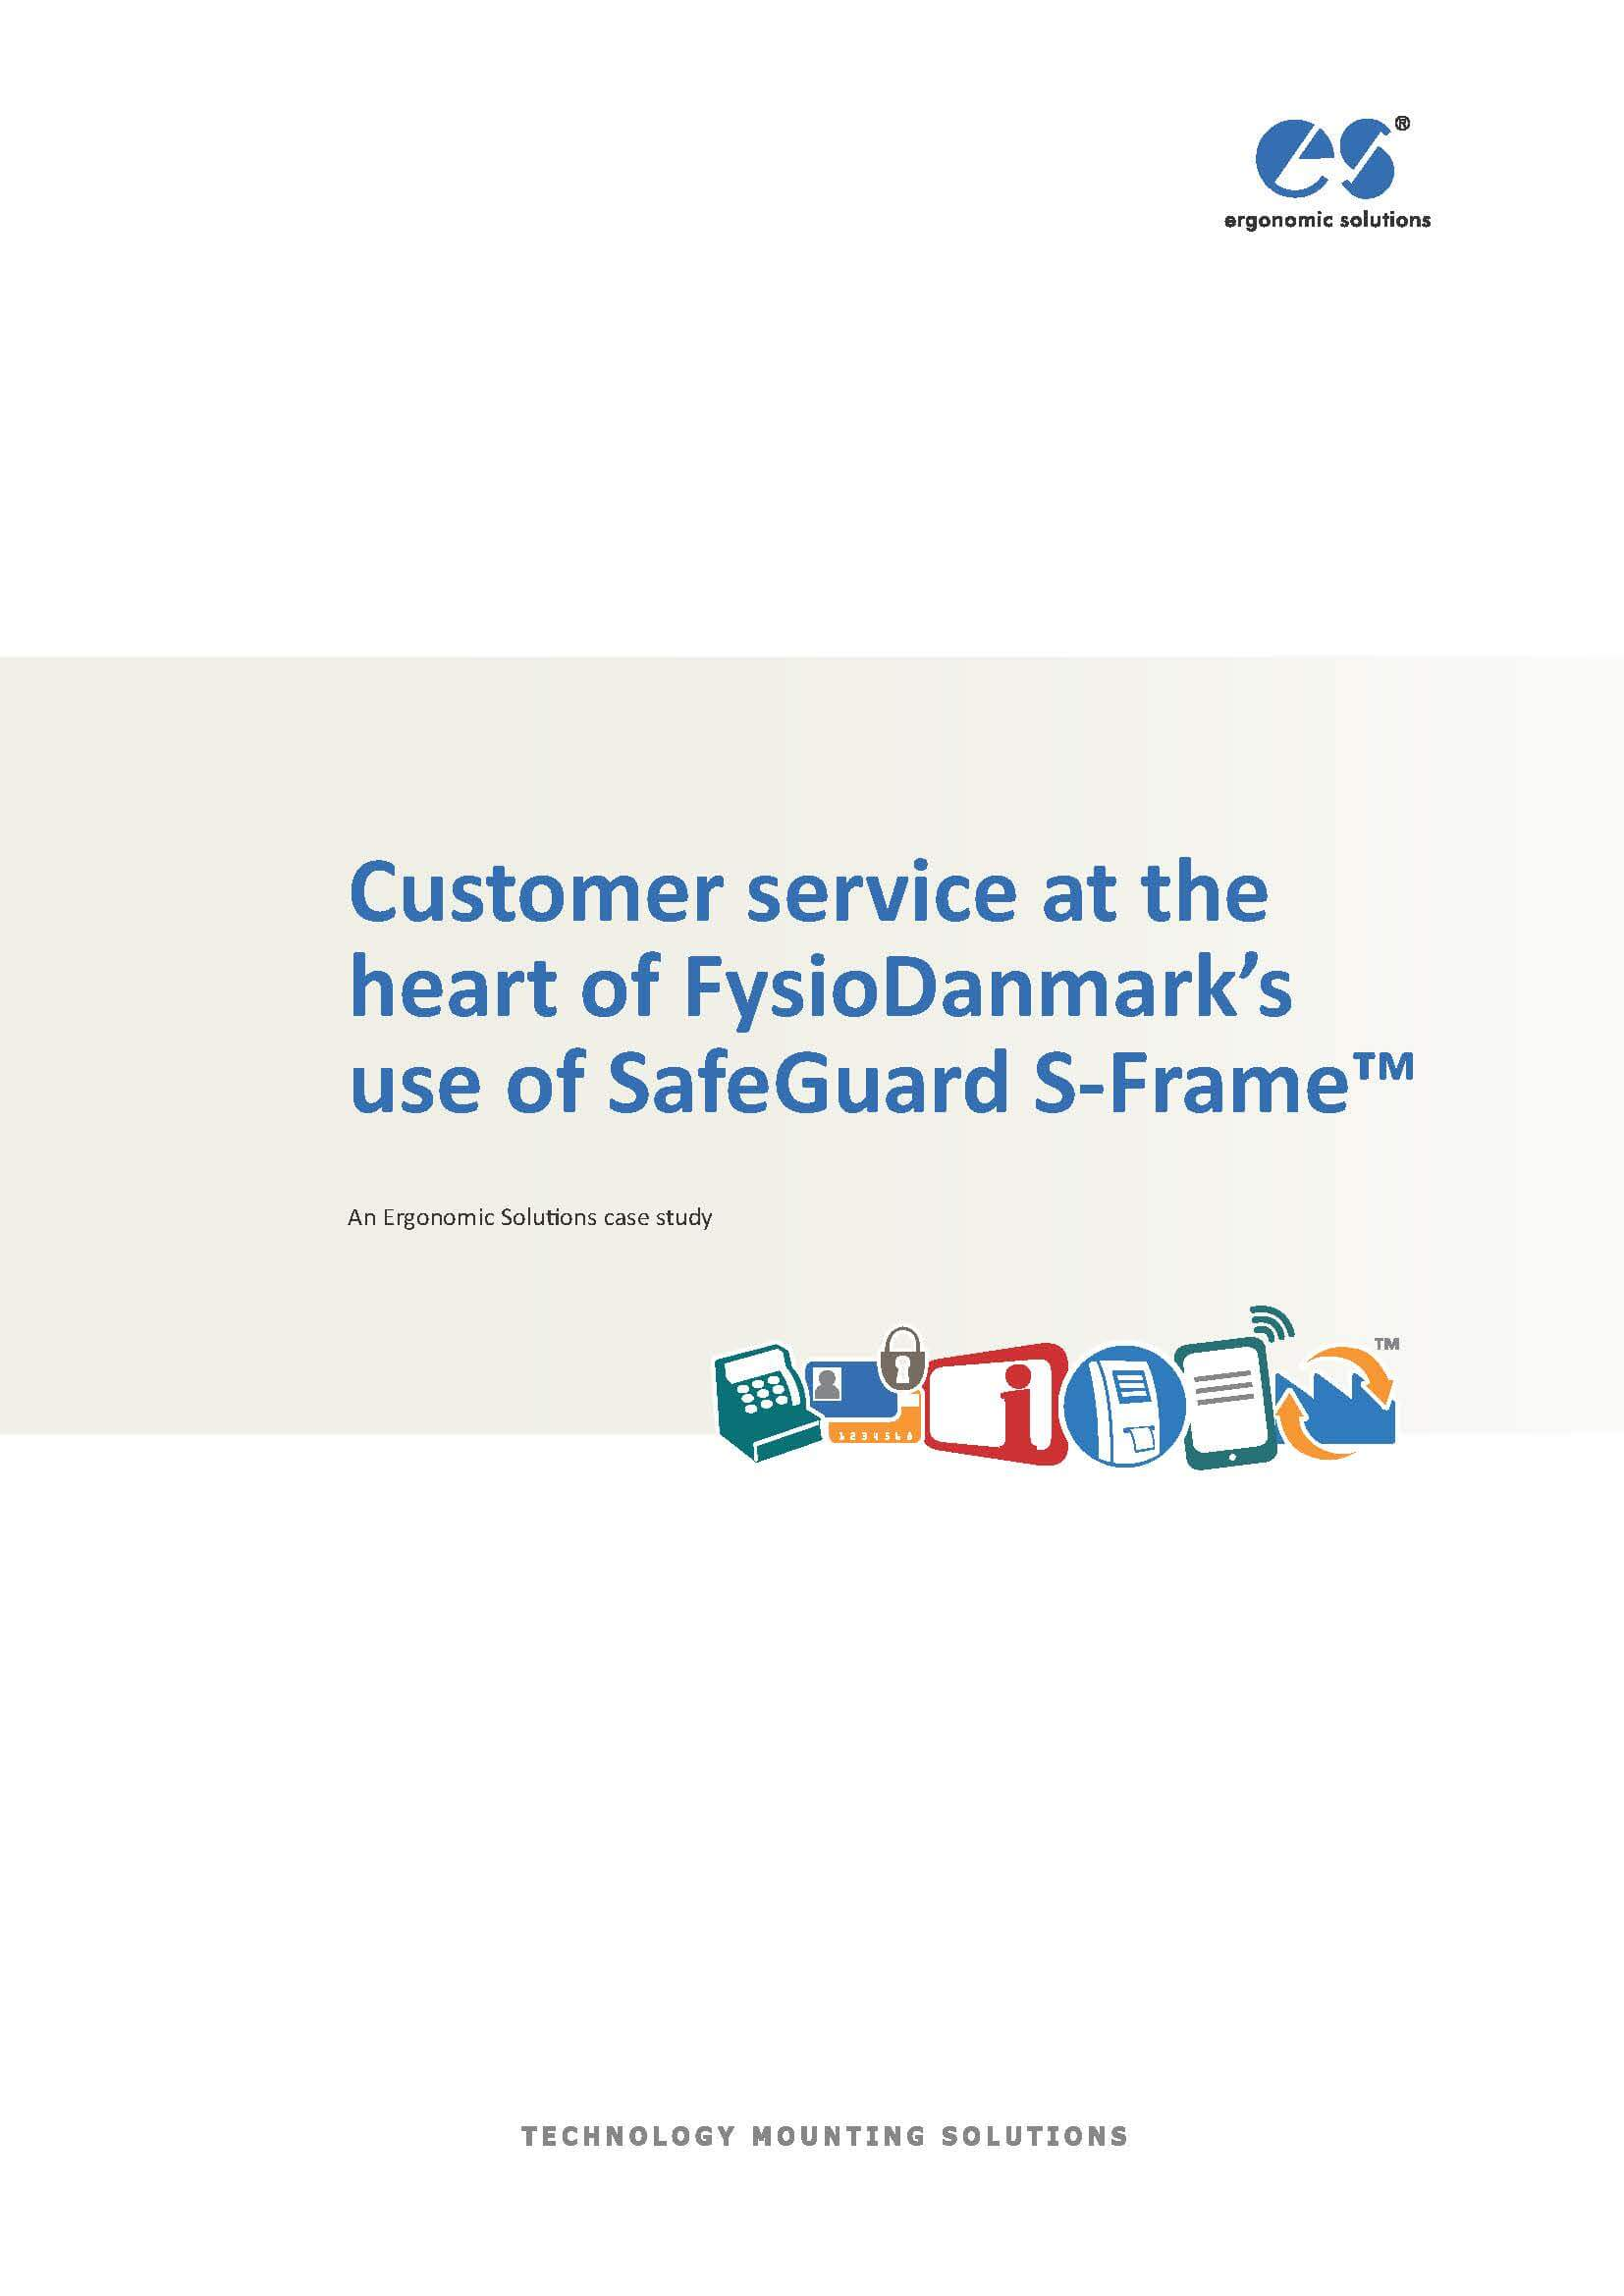 Customer service at the heart of FysioDanmark's use of SafeGuard S-Frame